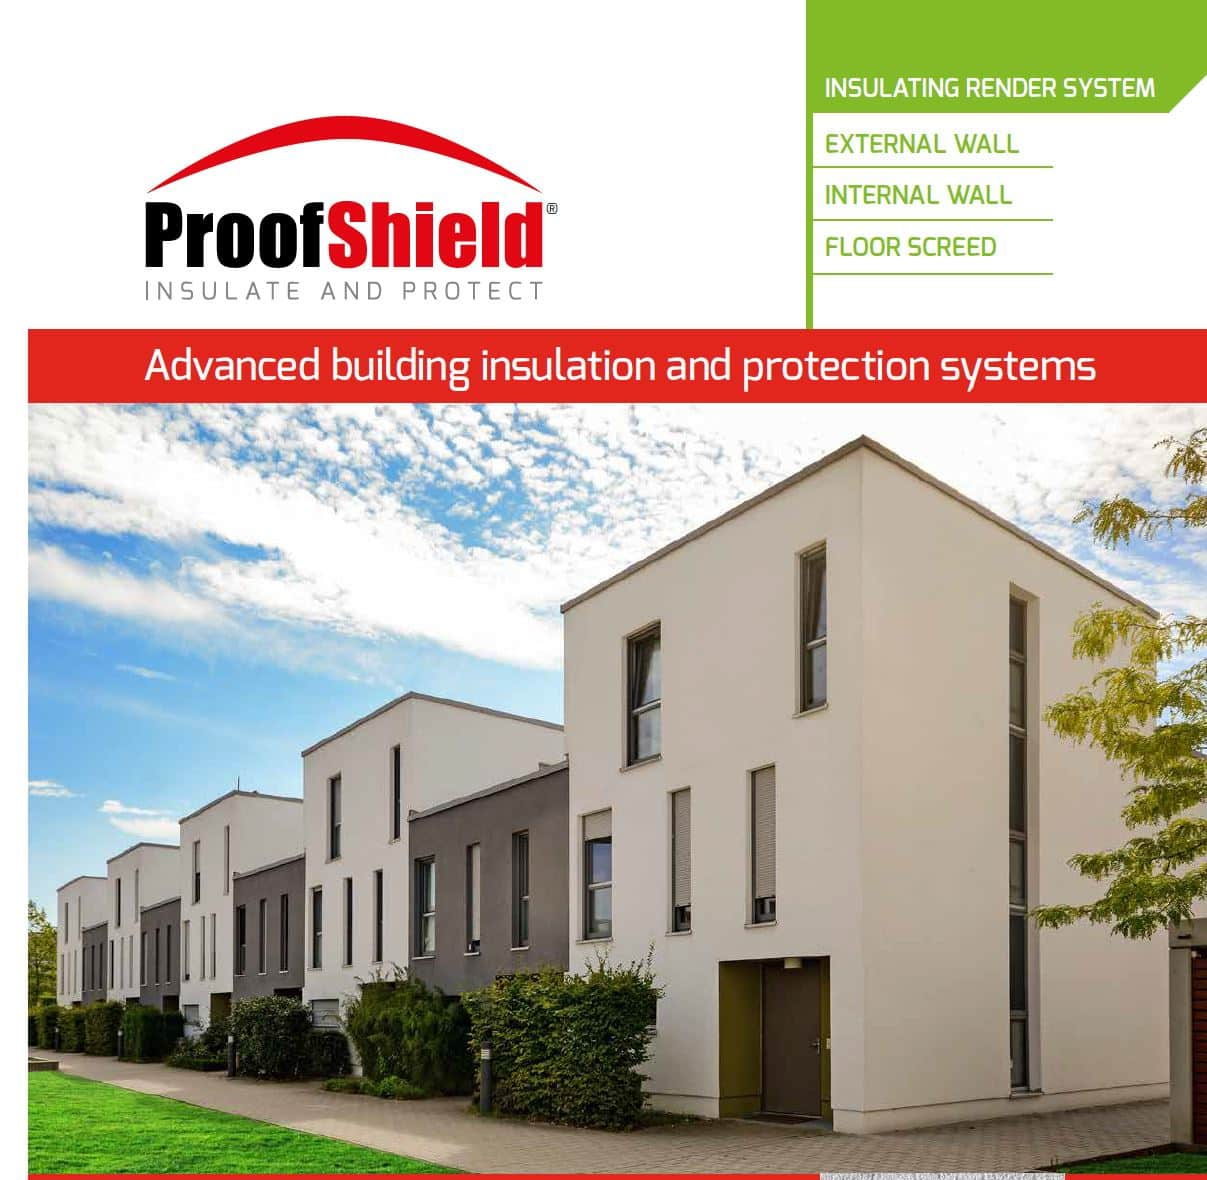 ProofTherm Insulating Render Plaster breathable insulating render